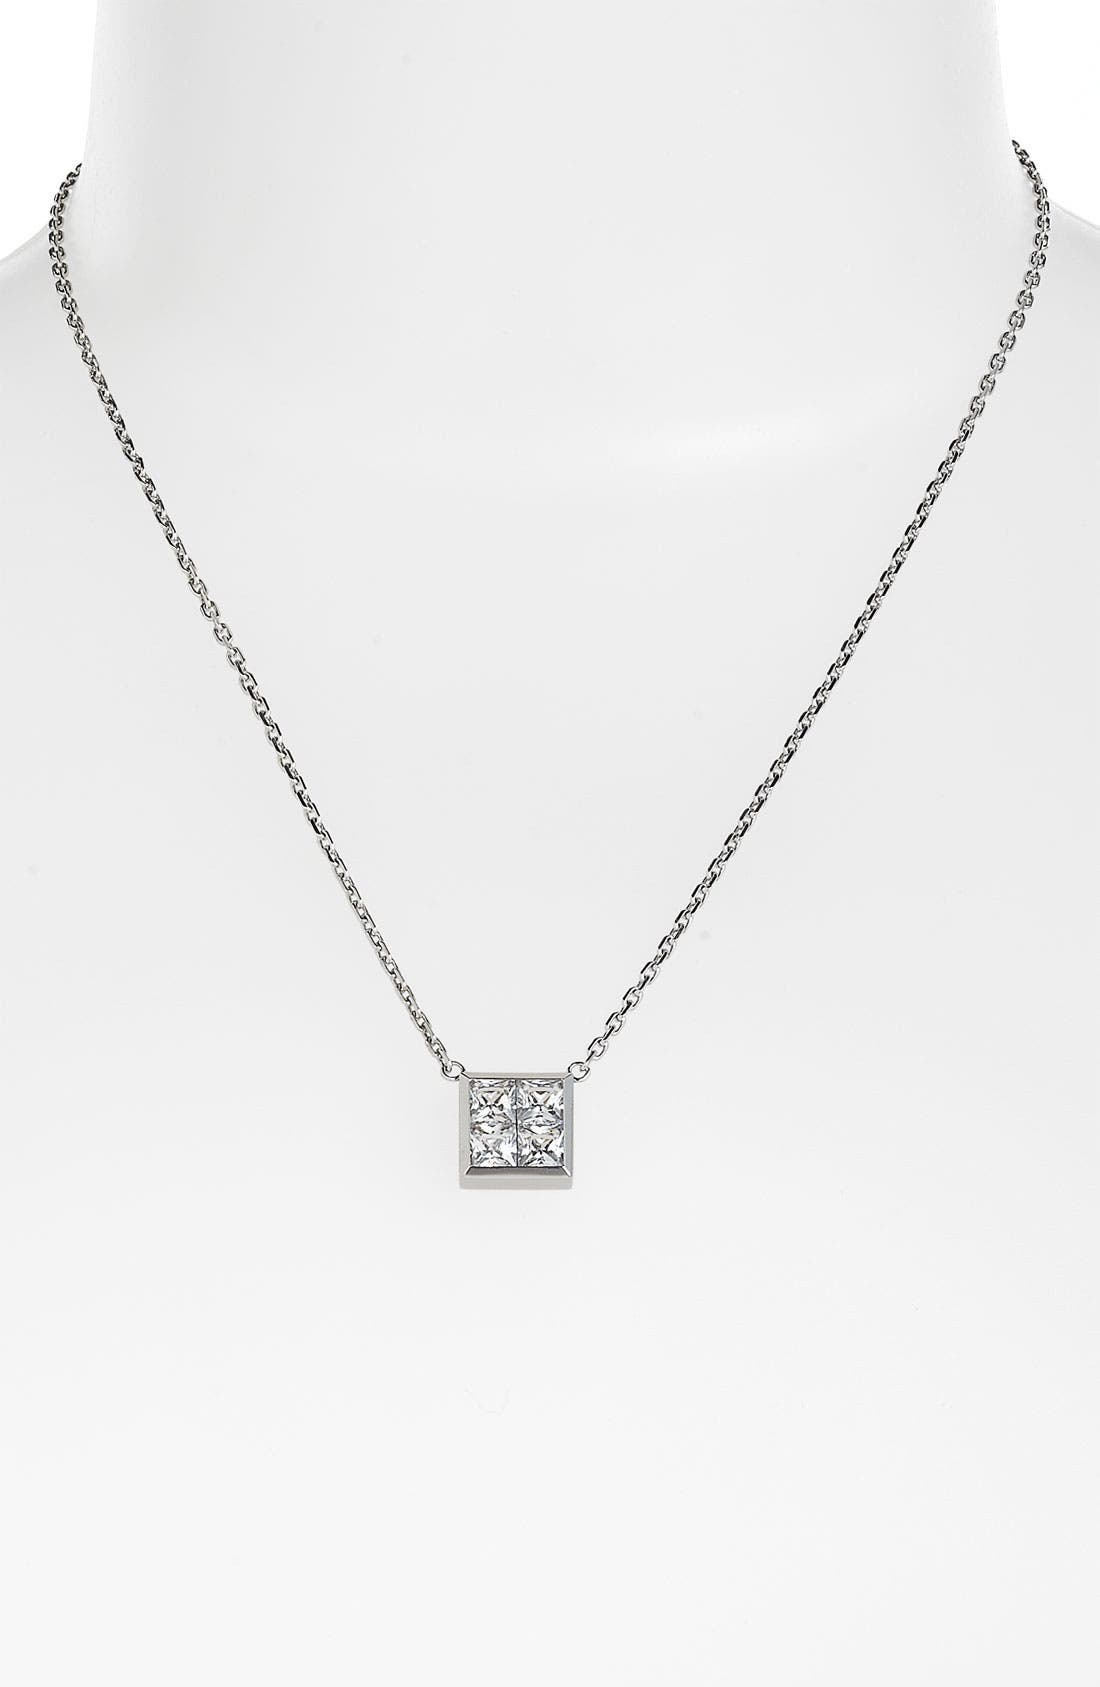 Main Image - Michael Kors 'Very Hollywood' Pendant Necklace